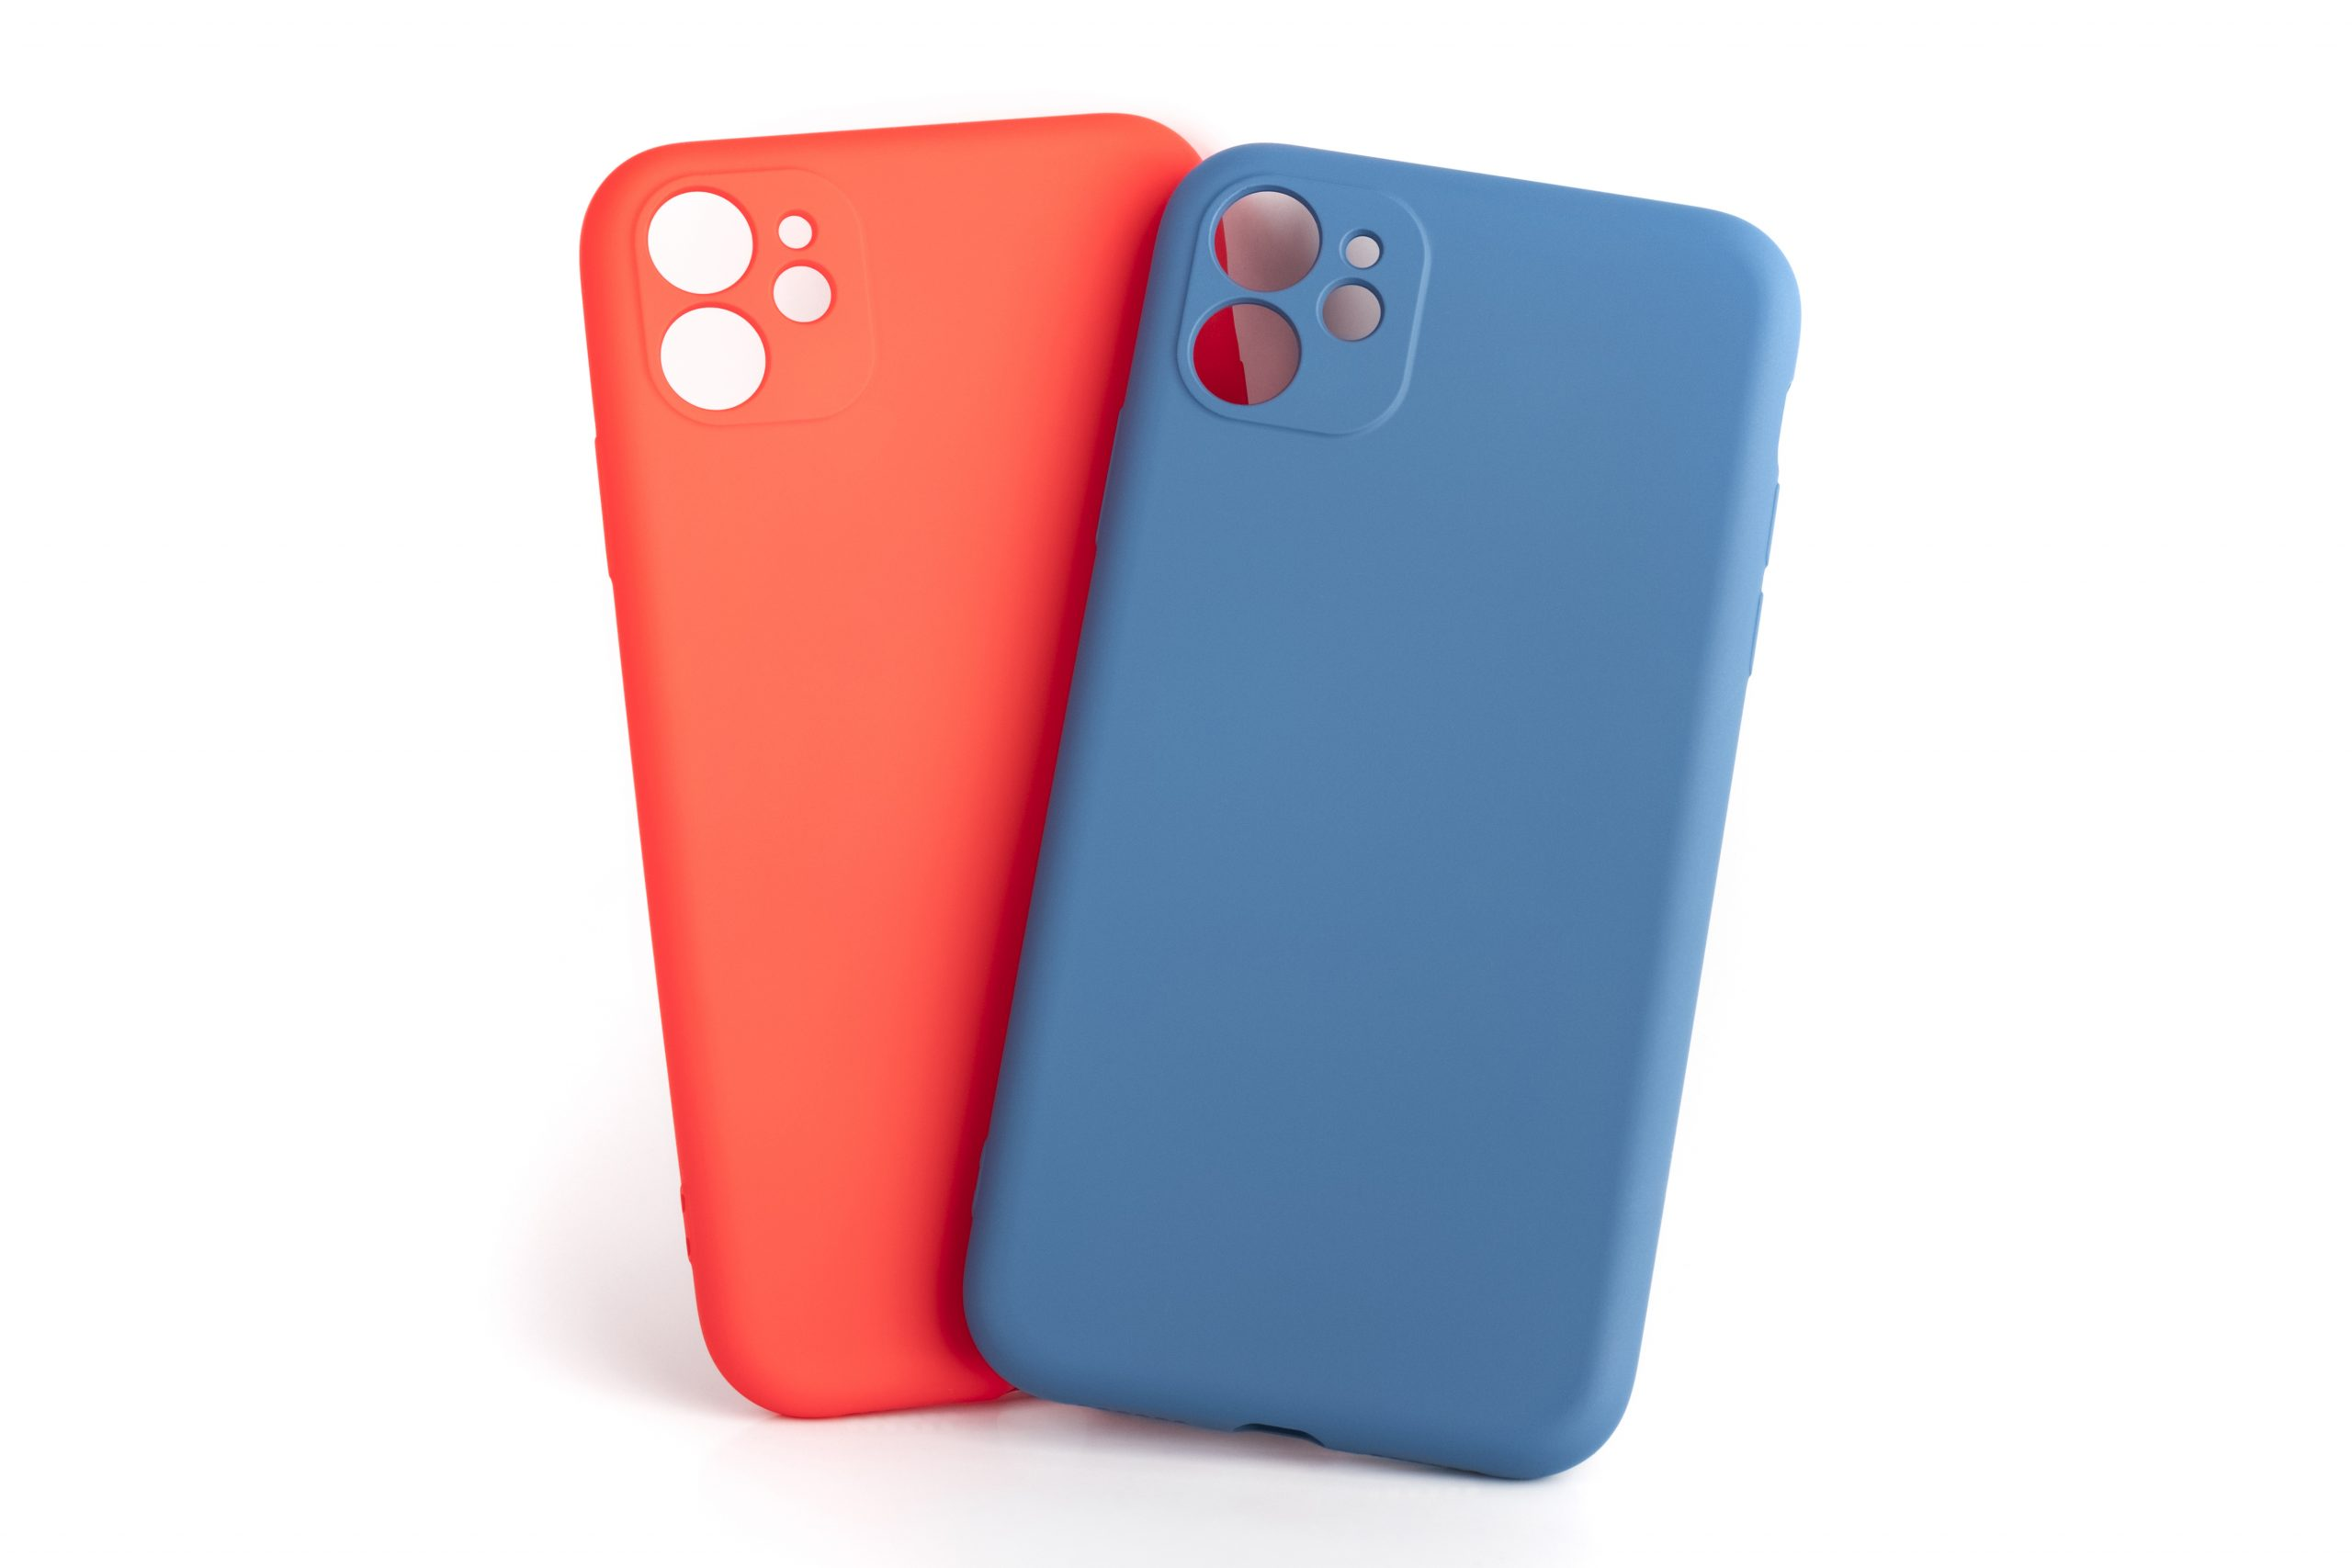 Best iPhone 11 Cases for Protection